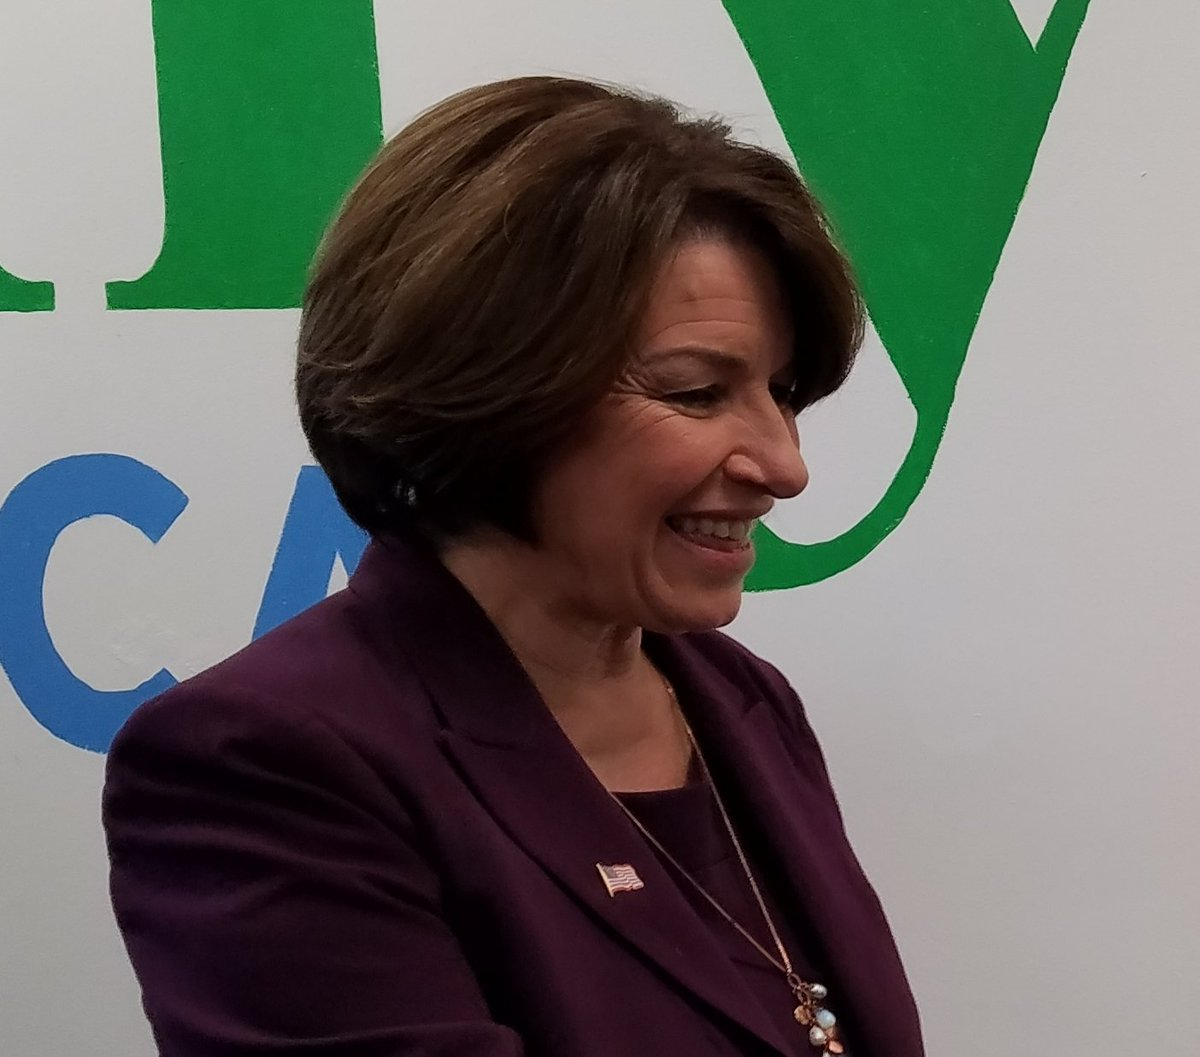 Did you know...  Amy Klobuchar picked the top-notch University of Chicago Law School because it offered her the best financial aid package.   #AmyForAmerica #Election2020 #TheSenatorNextDoor @amyklobuchar #KHive #ShesMyPresident #Klobucharmy